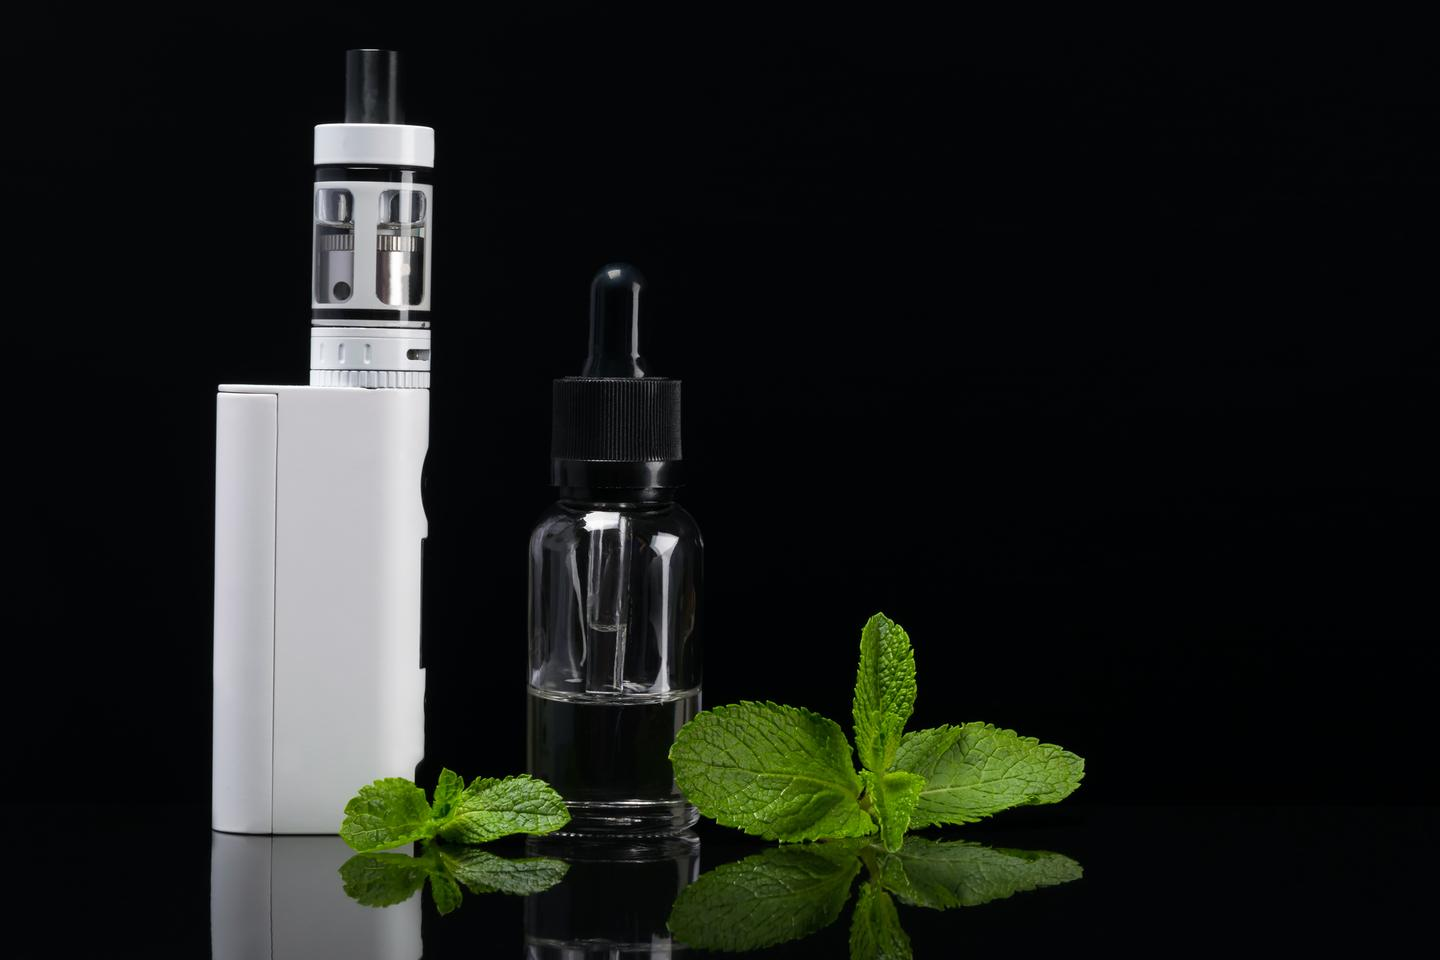 A chemical banned as a food additive by the FDA last year has been found in a number of e-cigarette liquids